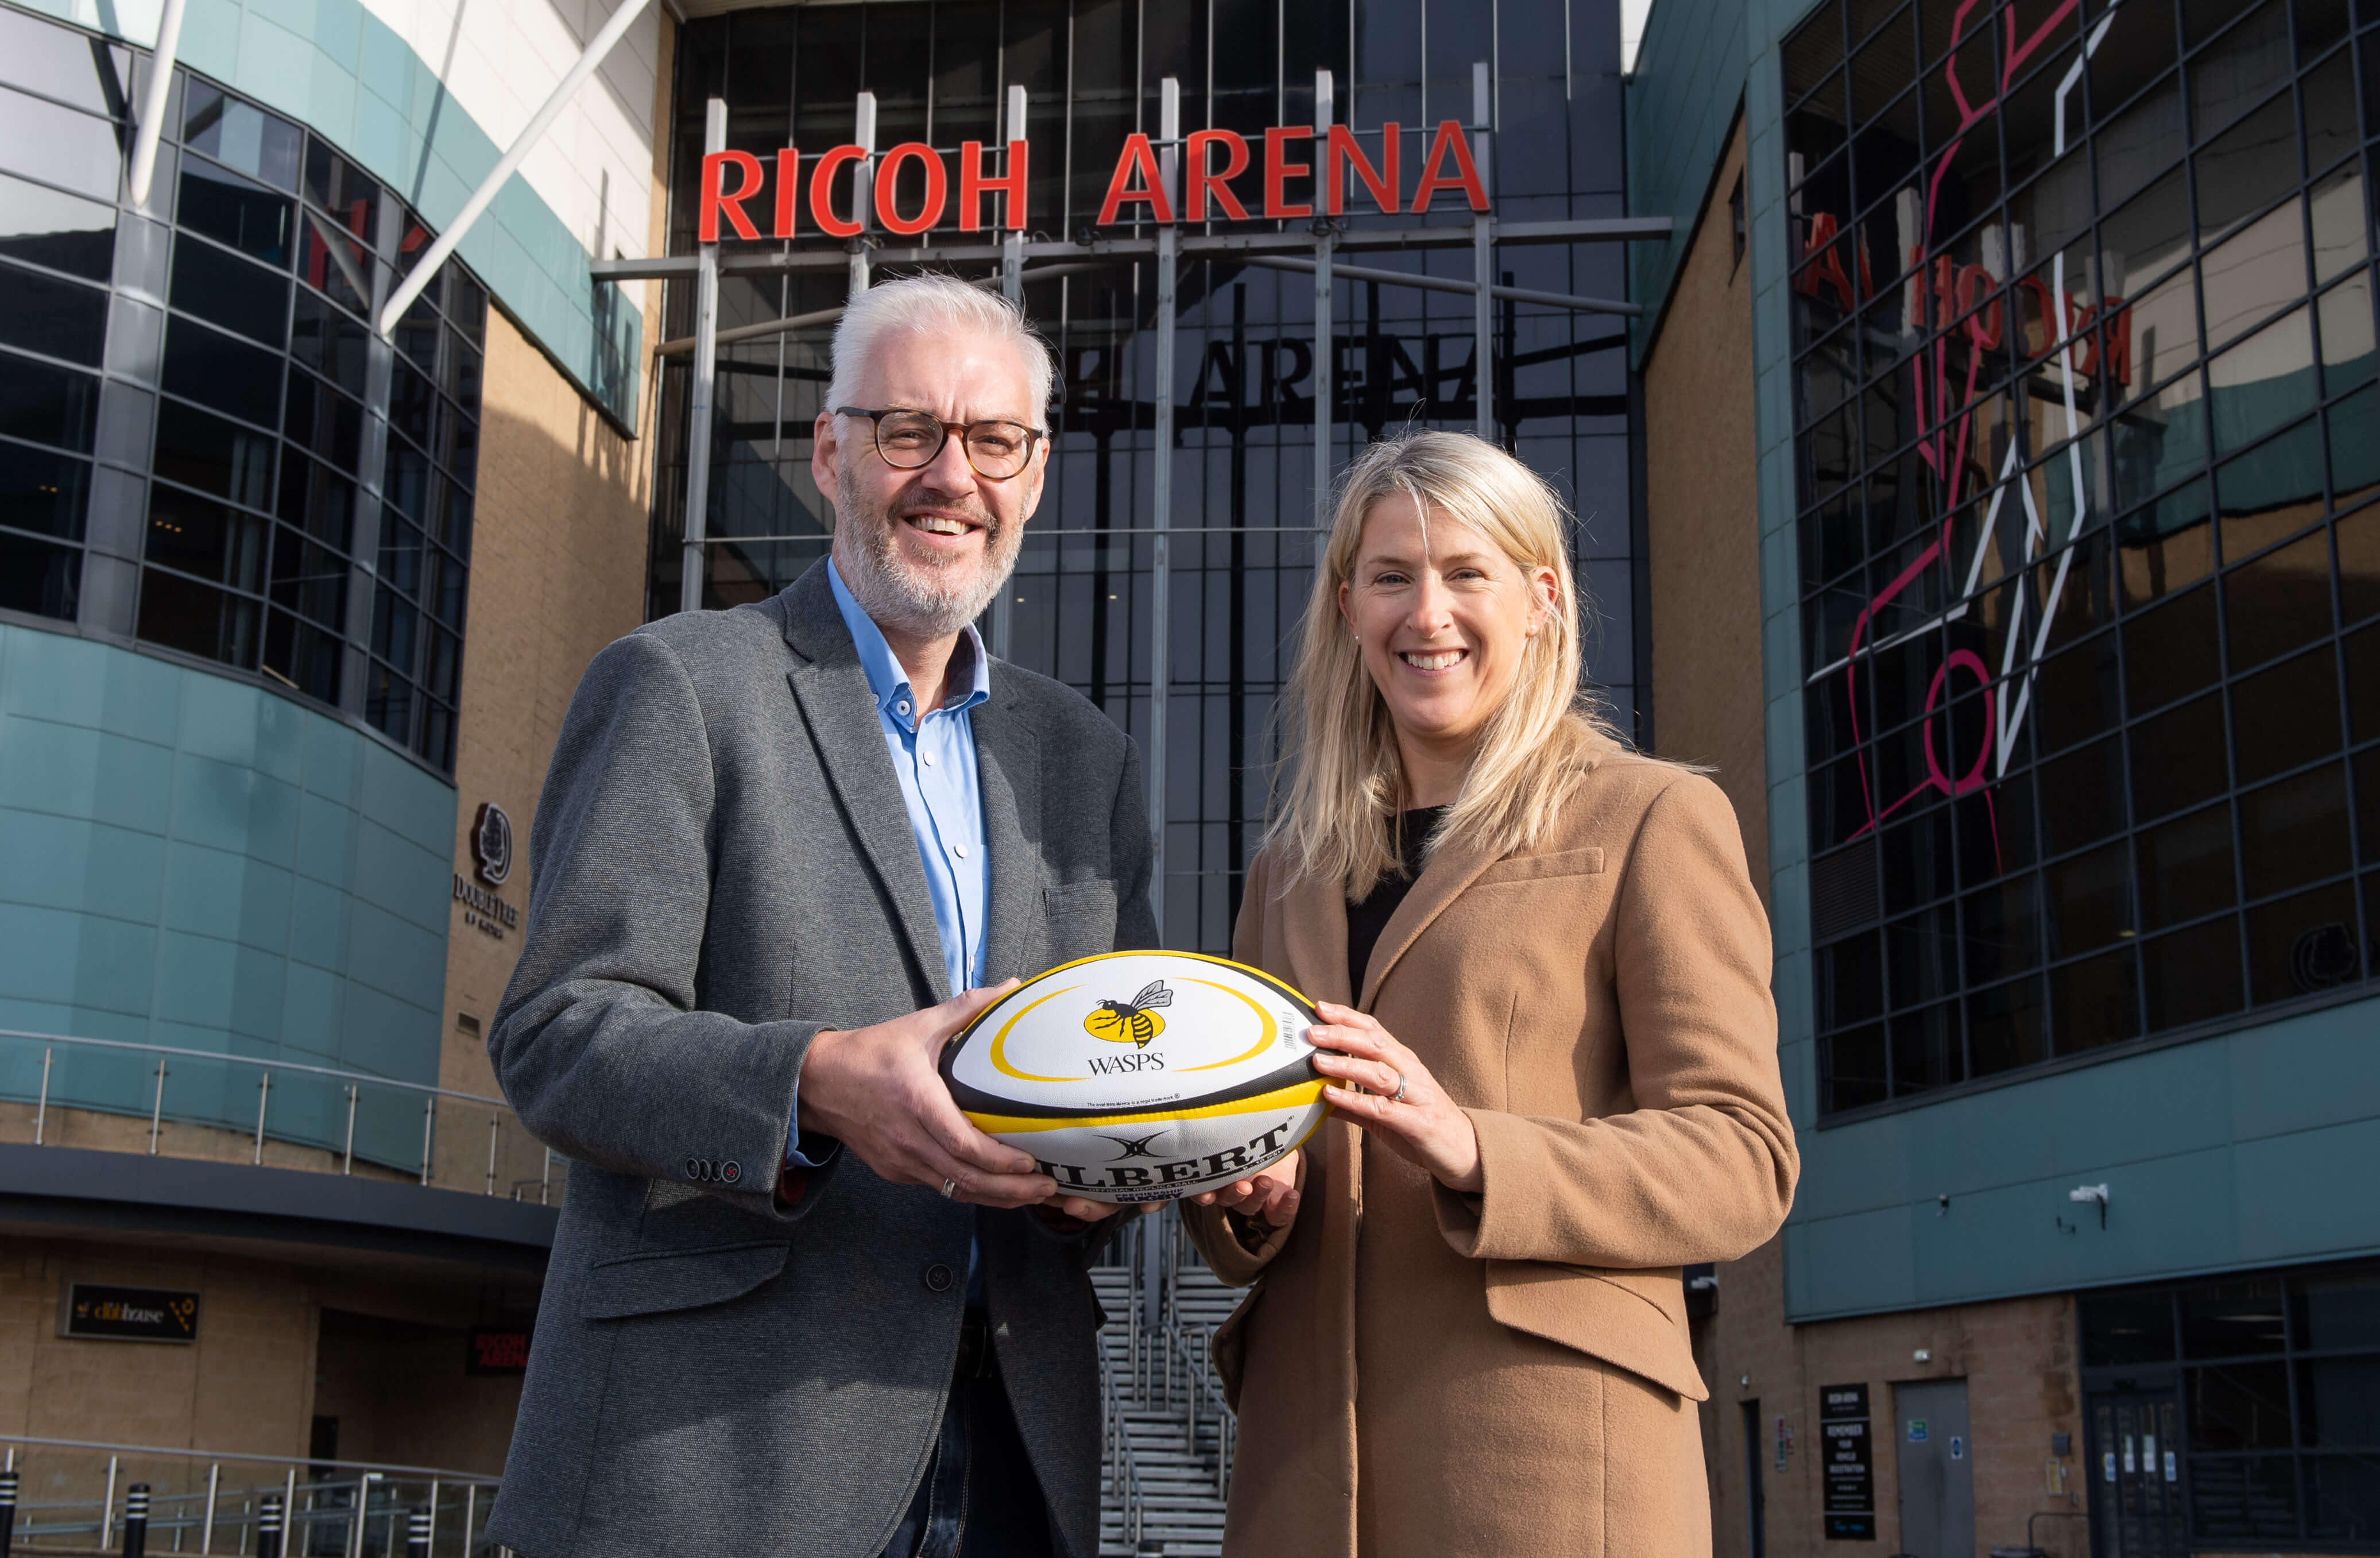 Ricoh Arena office space offers 'real kudos' for business